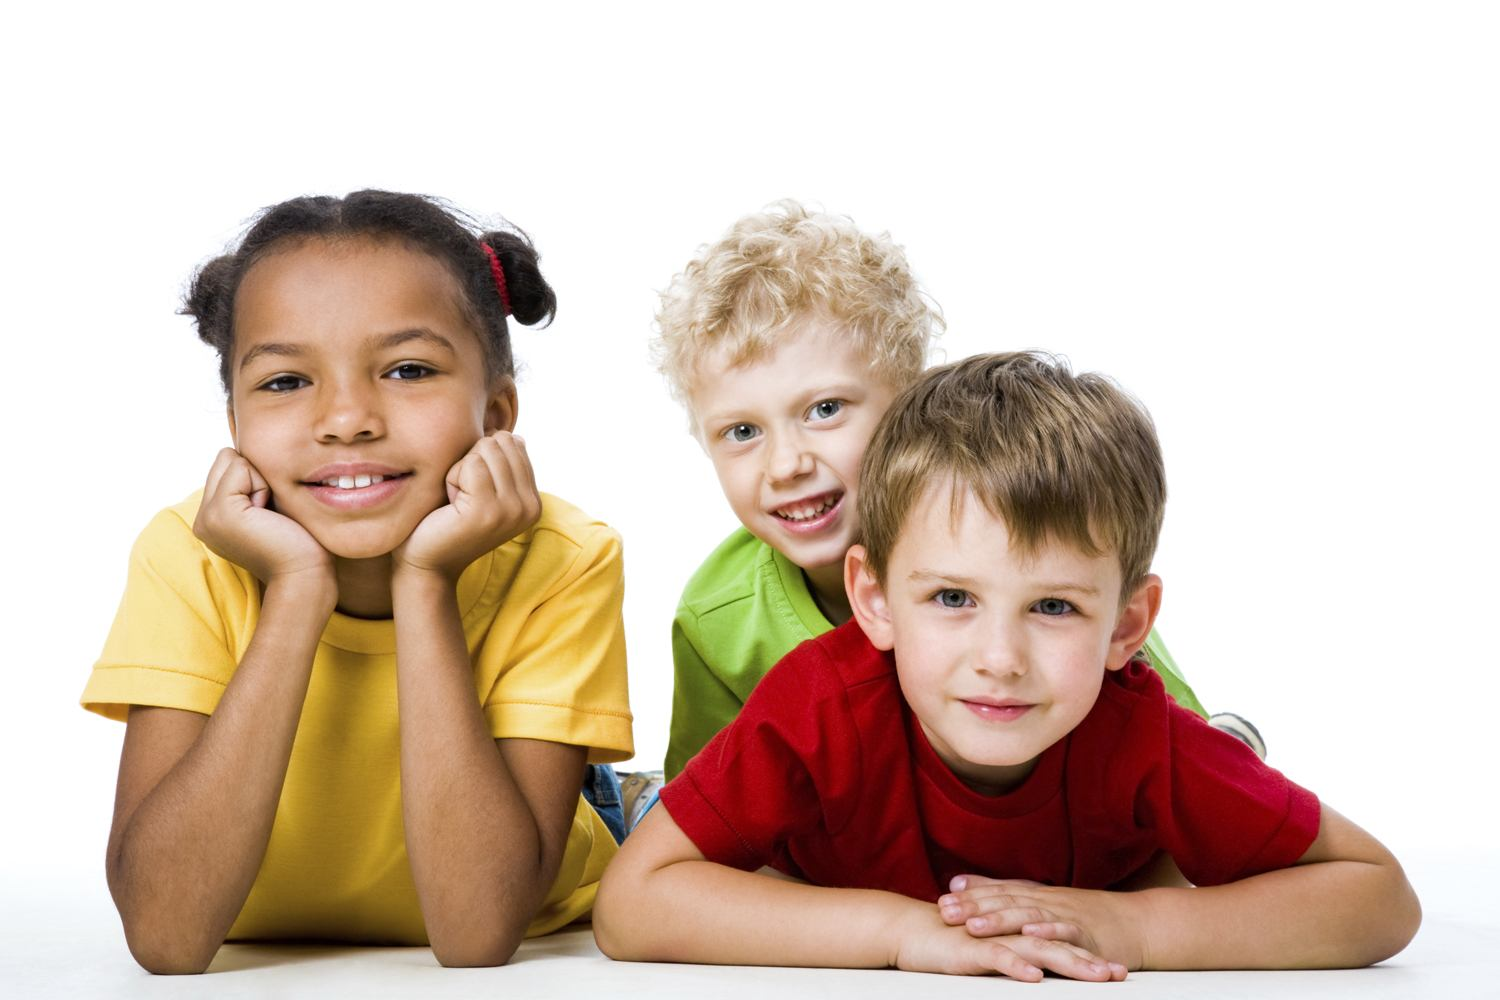 Nominate a child - help children by nominating them for our cosmetic and/or reconstructive surgery services